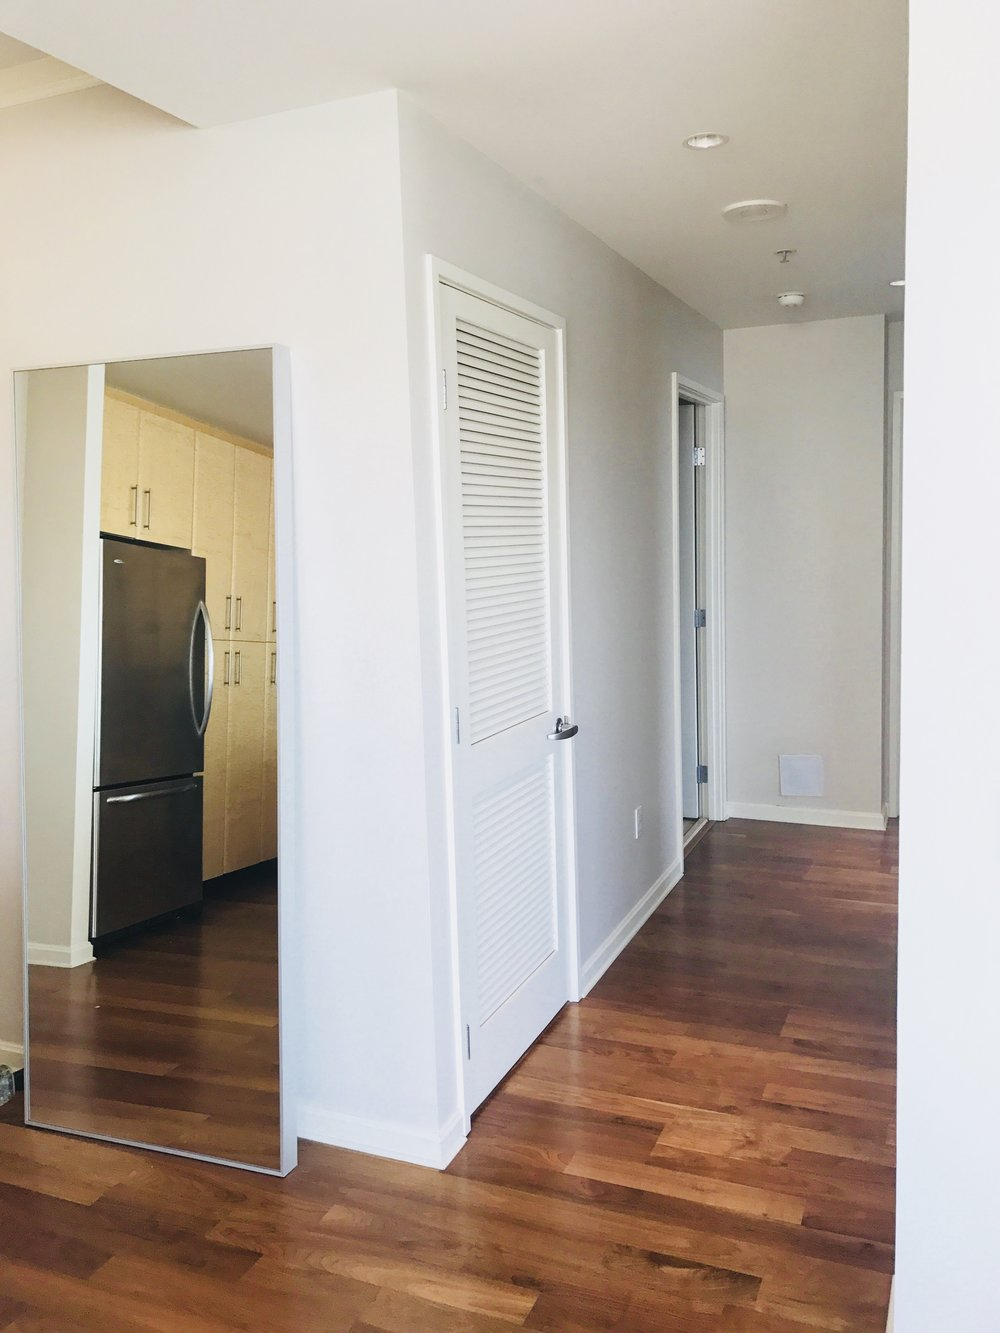 furnished apartments for rent in san francisco.jpeg